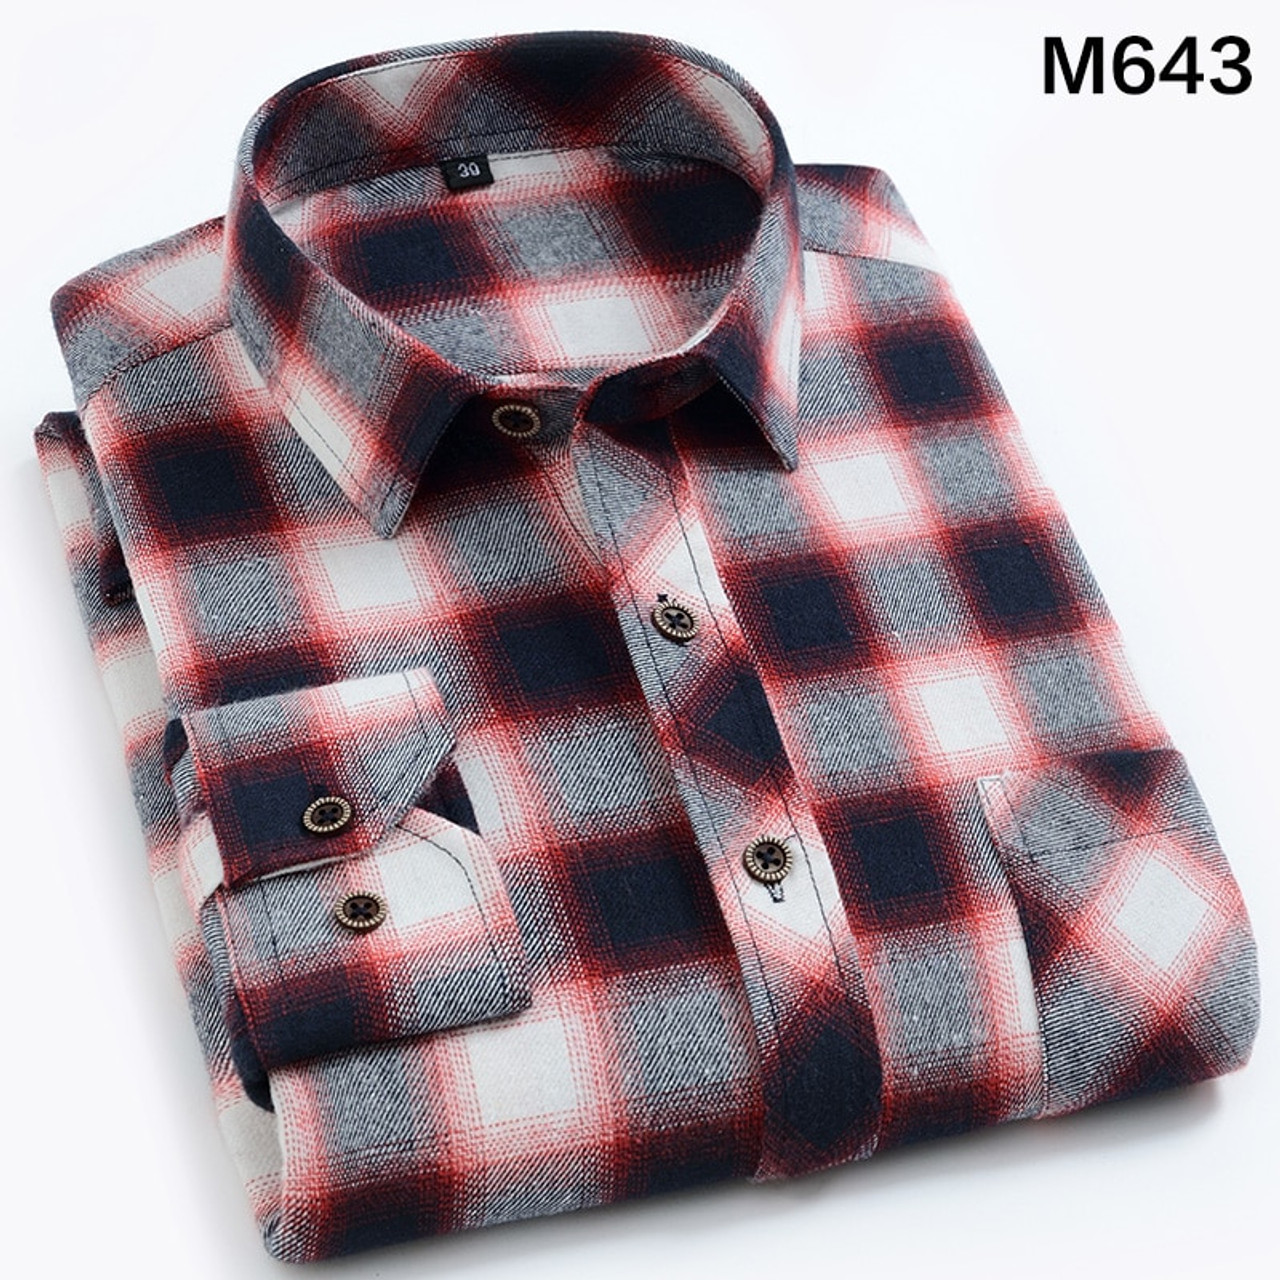 2019 Male Casual Shirts Cotton Flannel Plaid Long Sleeve Shirt,6608,Asian XS Label 38